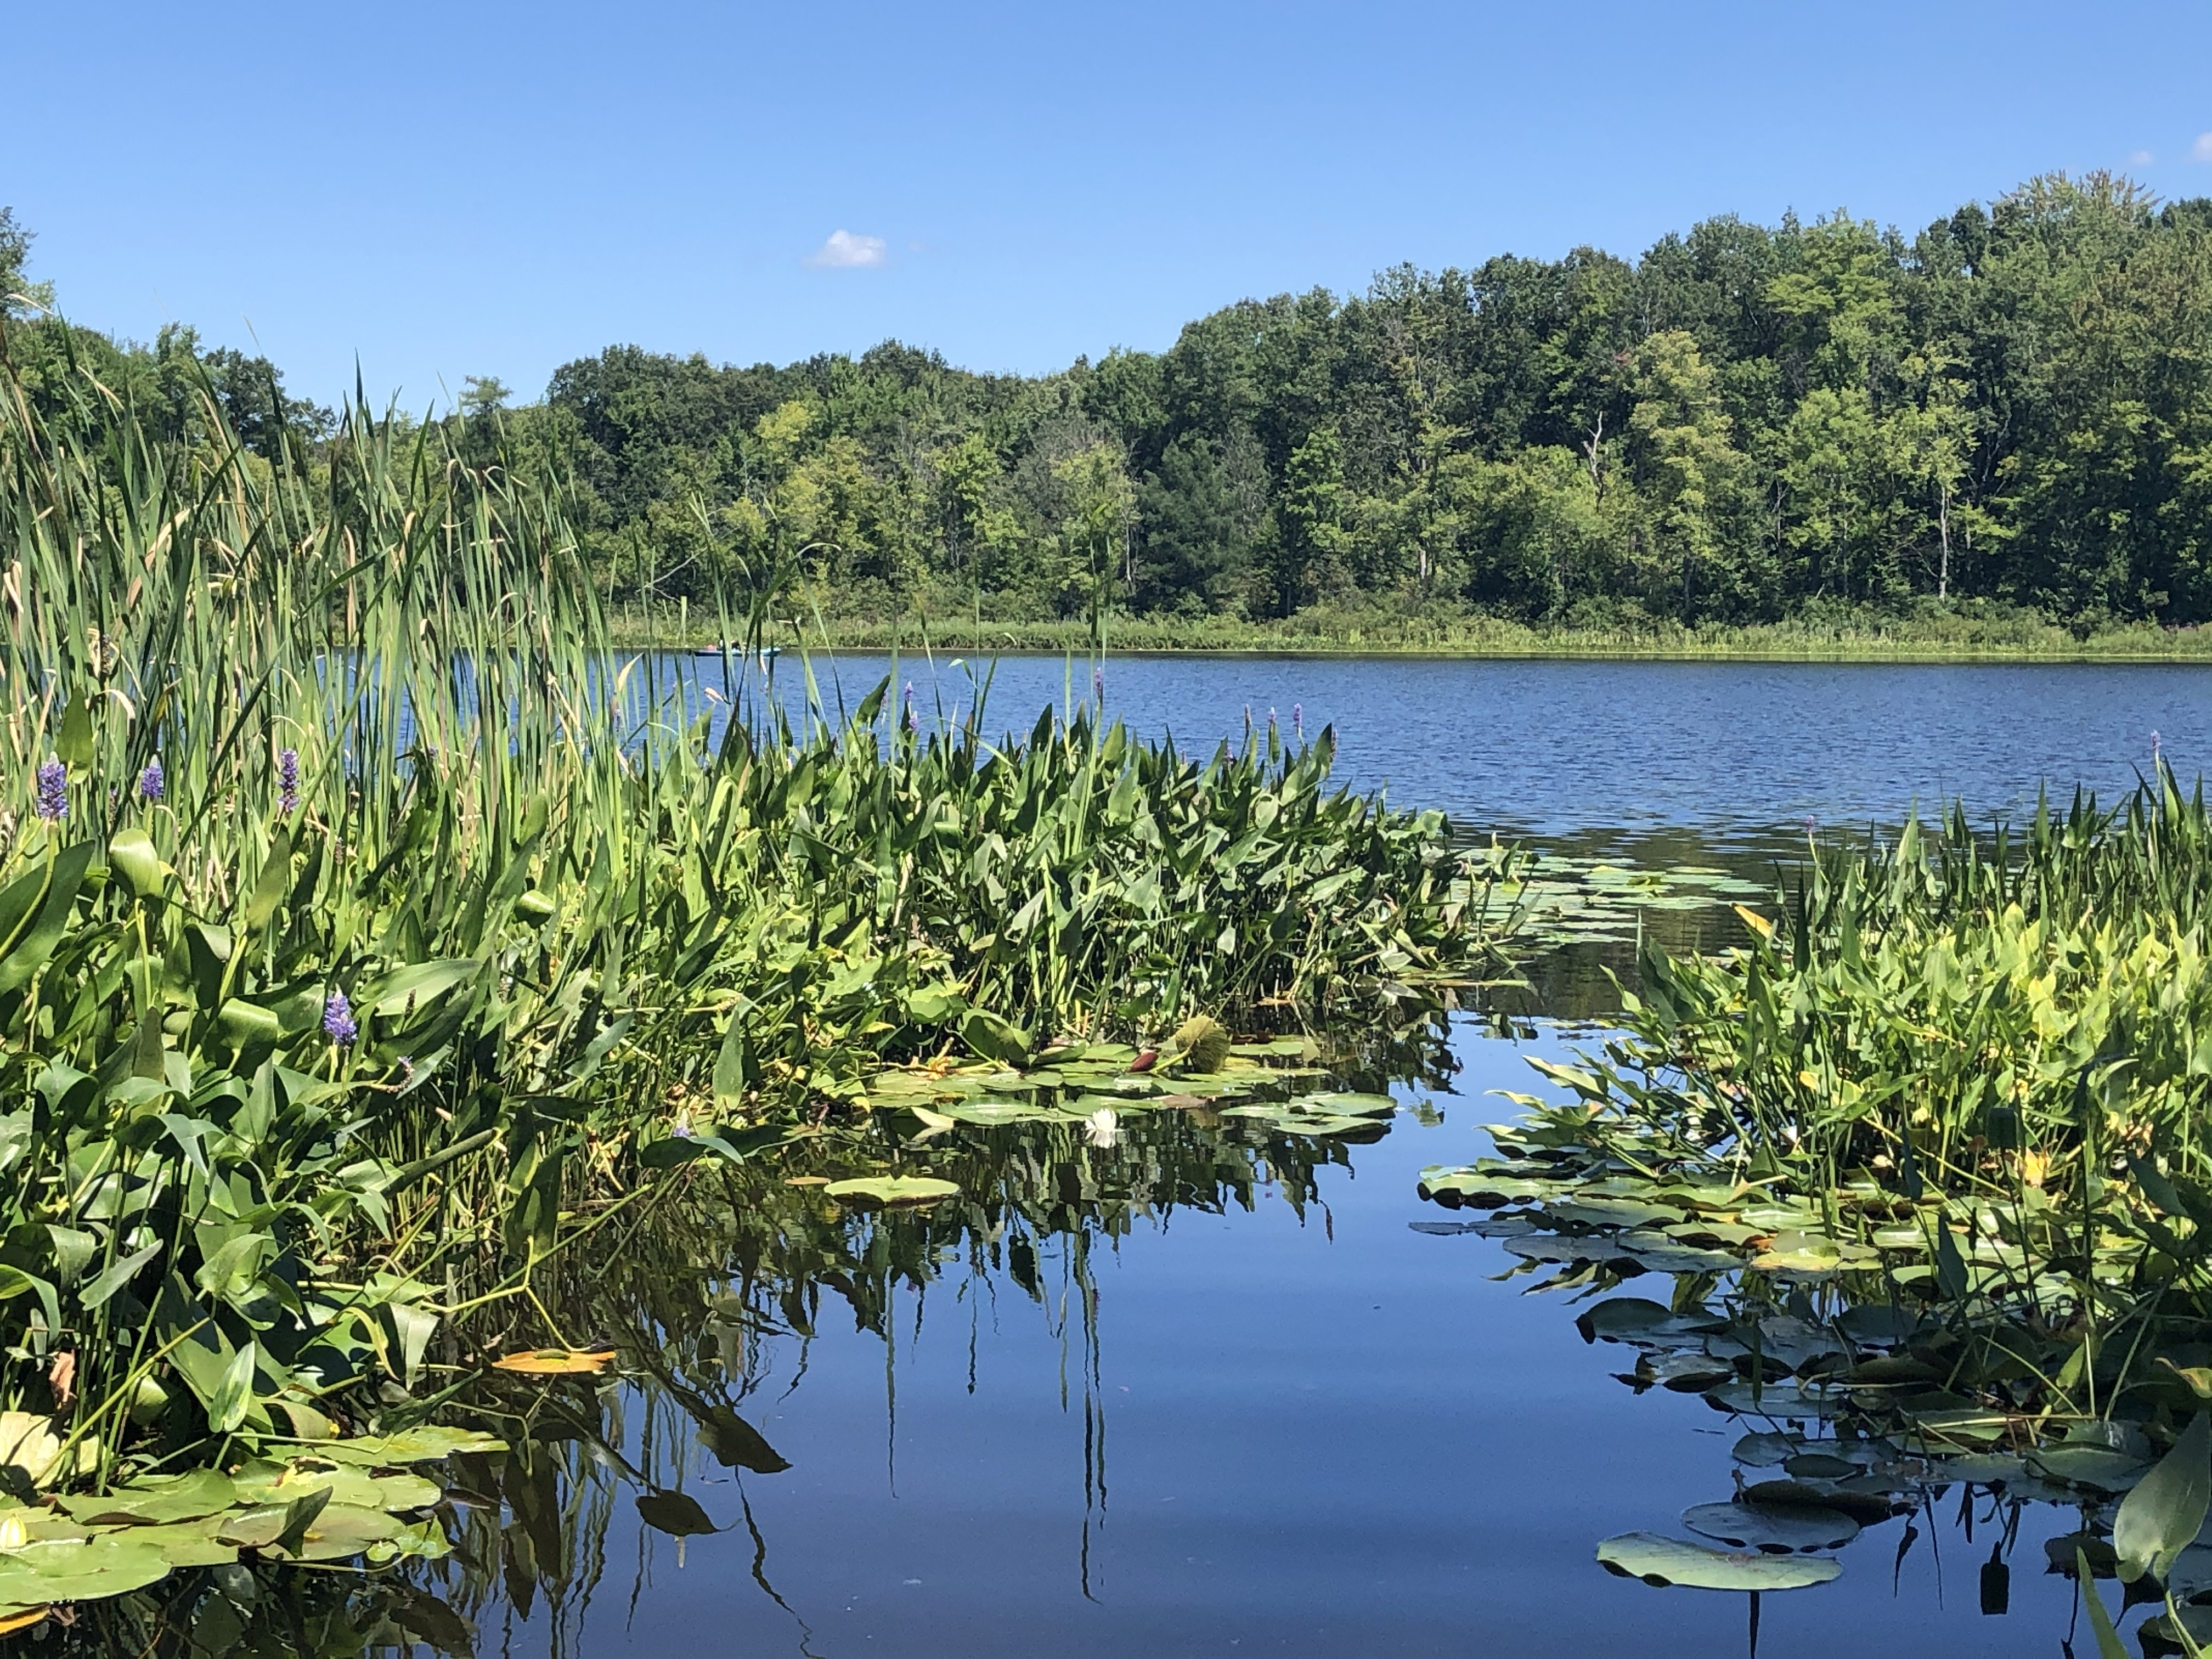 path through lilies, with a lake in the distance